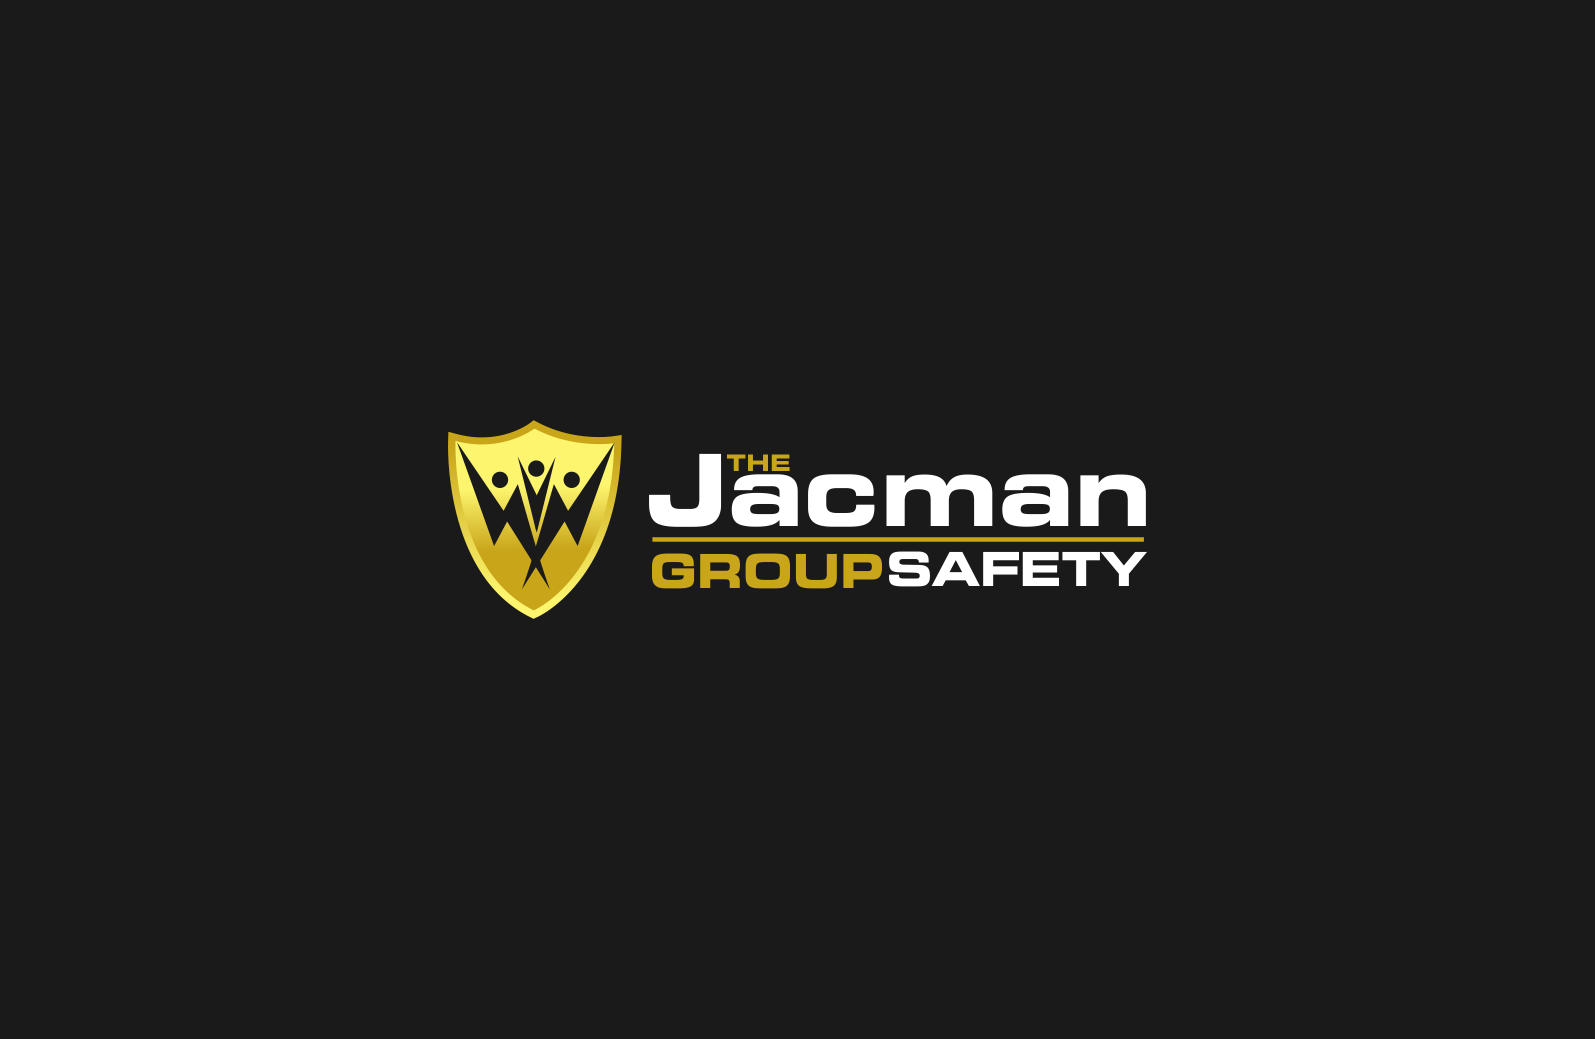 Logo Design by edwin123 - Entry No. 40 in the Logo Design Contest The Jacman Group Logo Design.